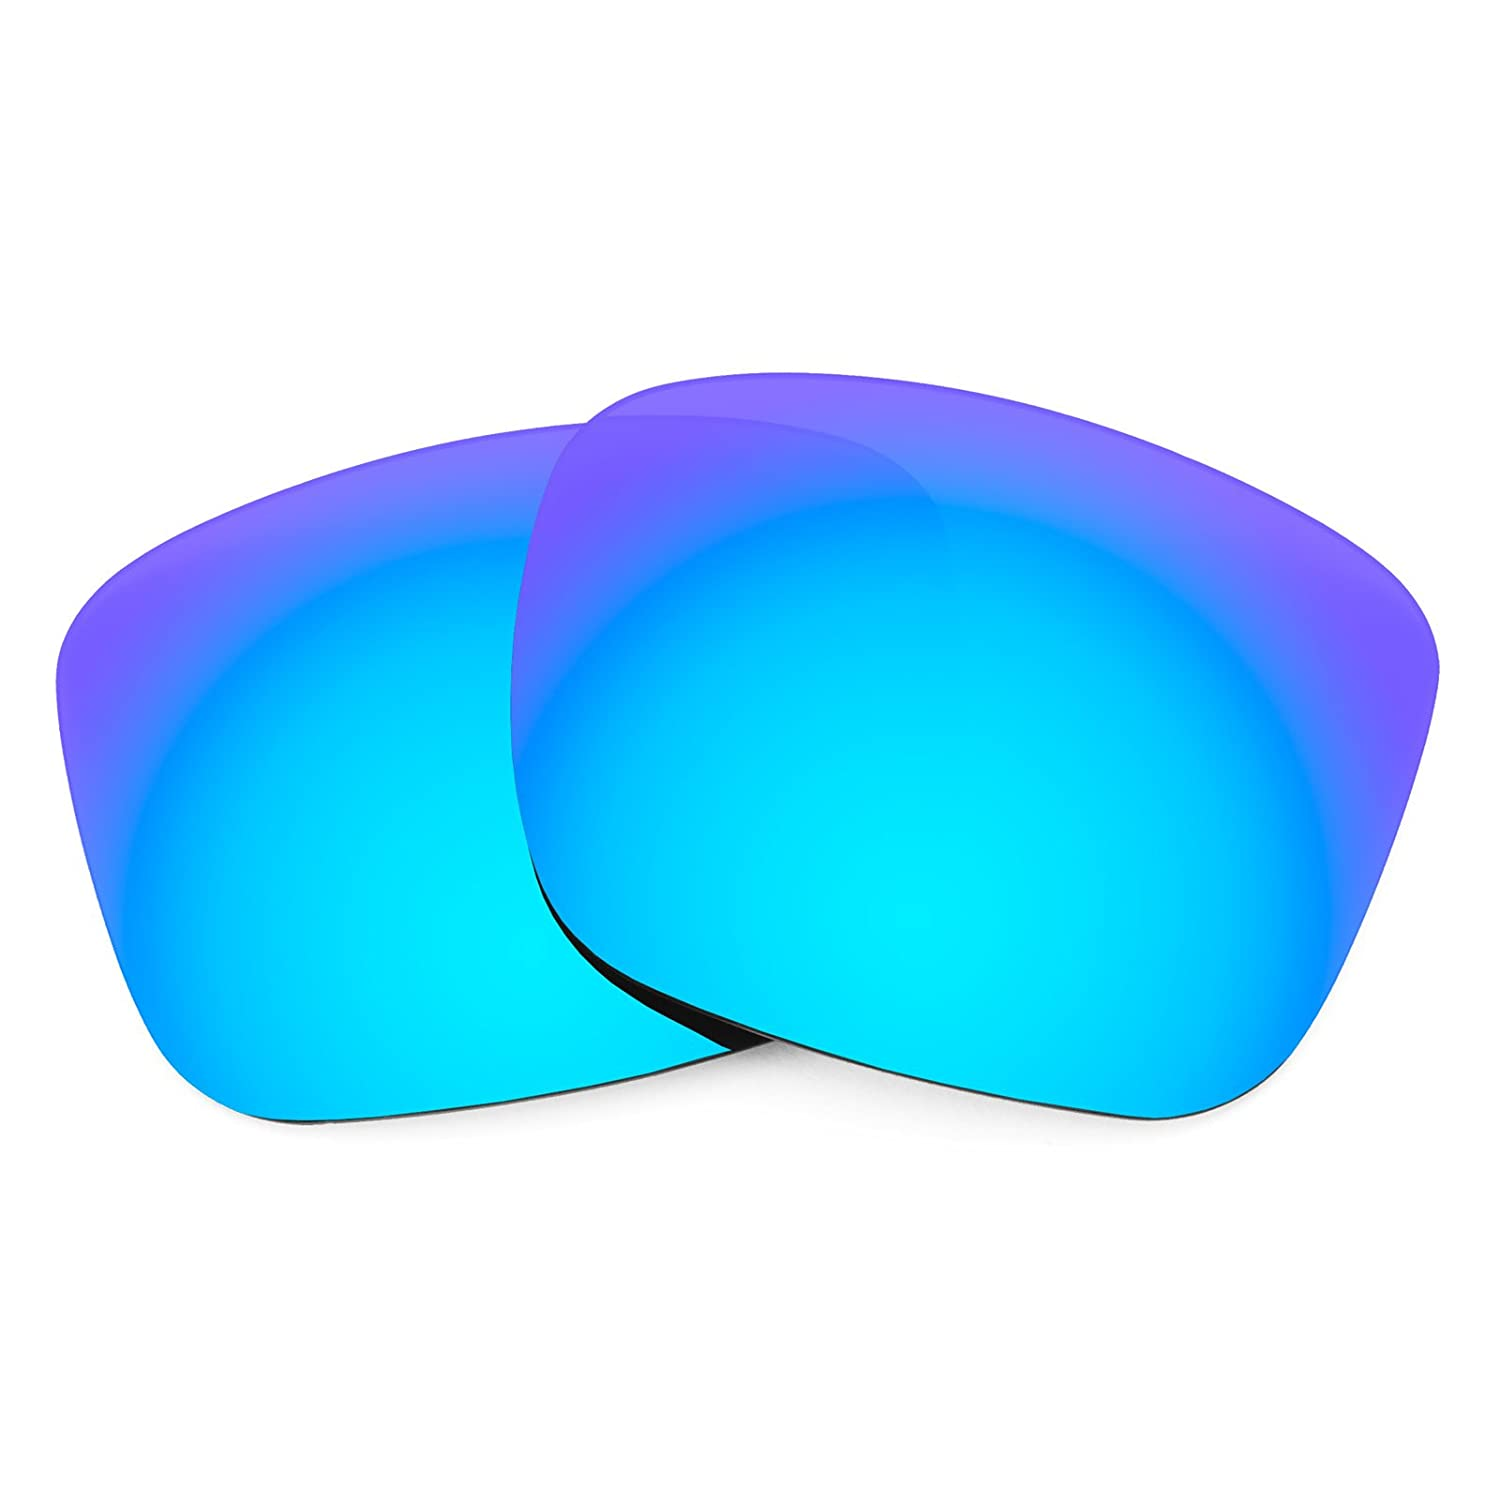 1473e3a7e55 Revant Polarized Replacement Lenses for Spy Optic Discord Ice Blue  MirrorShield®  Amazon.ca  Sports   Outdoors